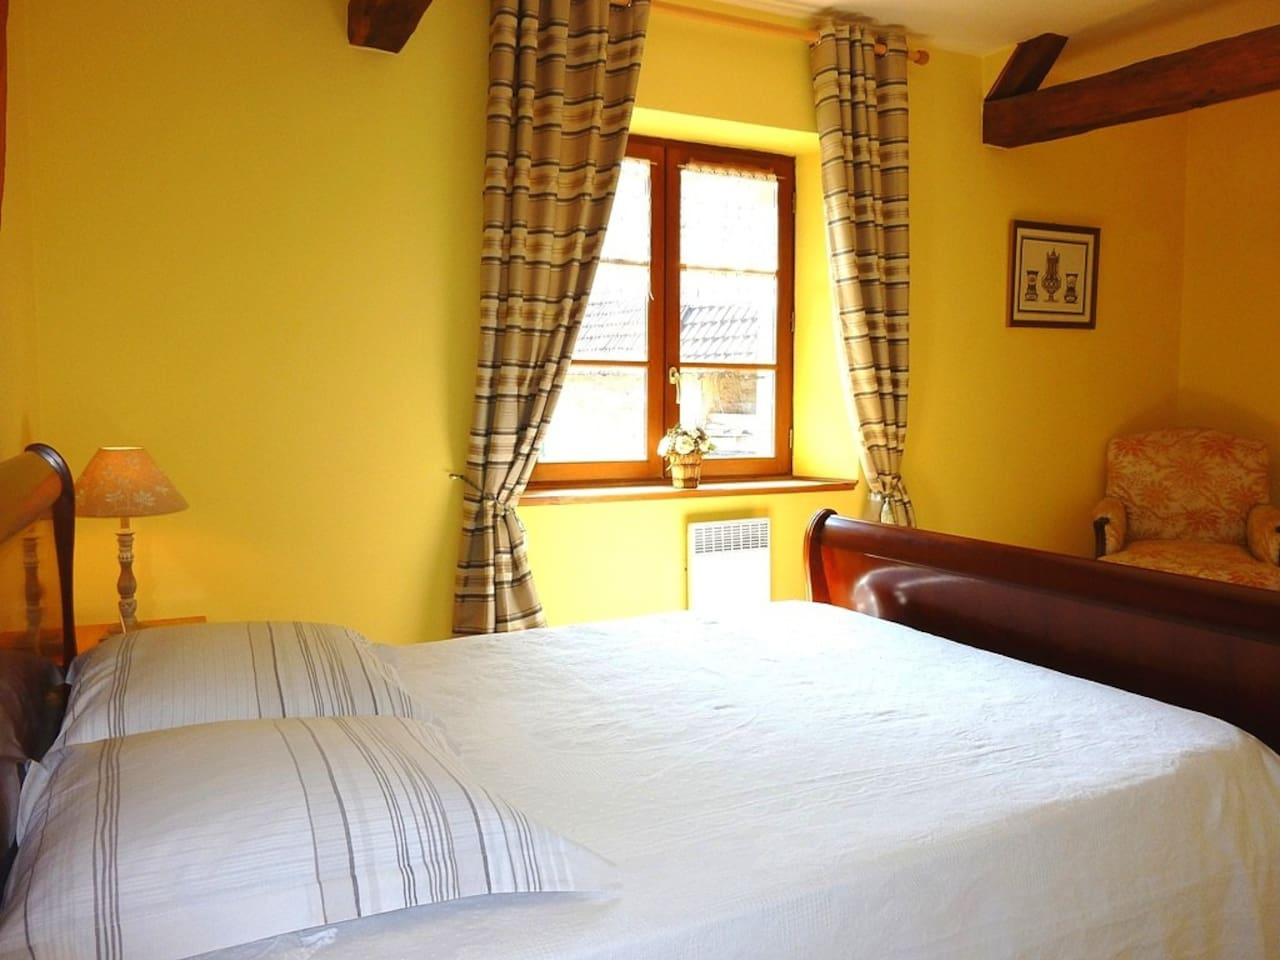 The sunny double bedroom with private bathroom has a view of the courtyard